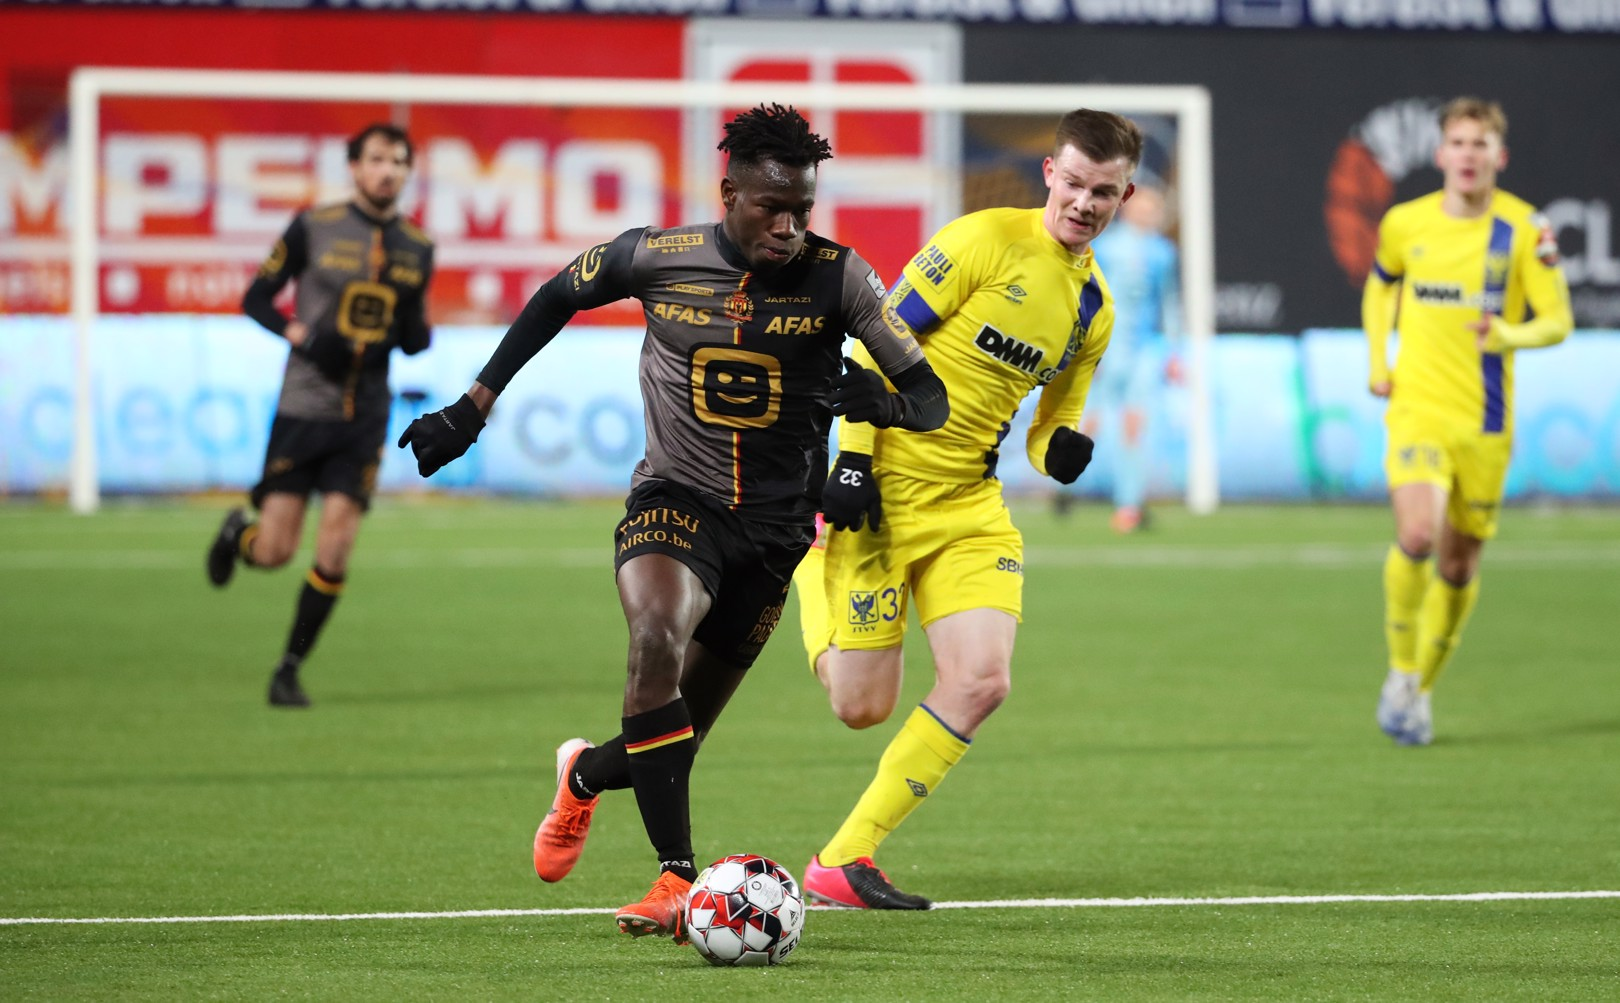 City complete Kaboré signing